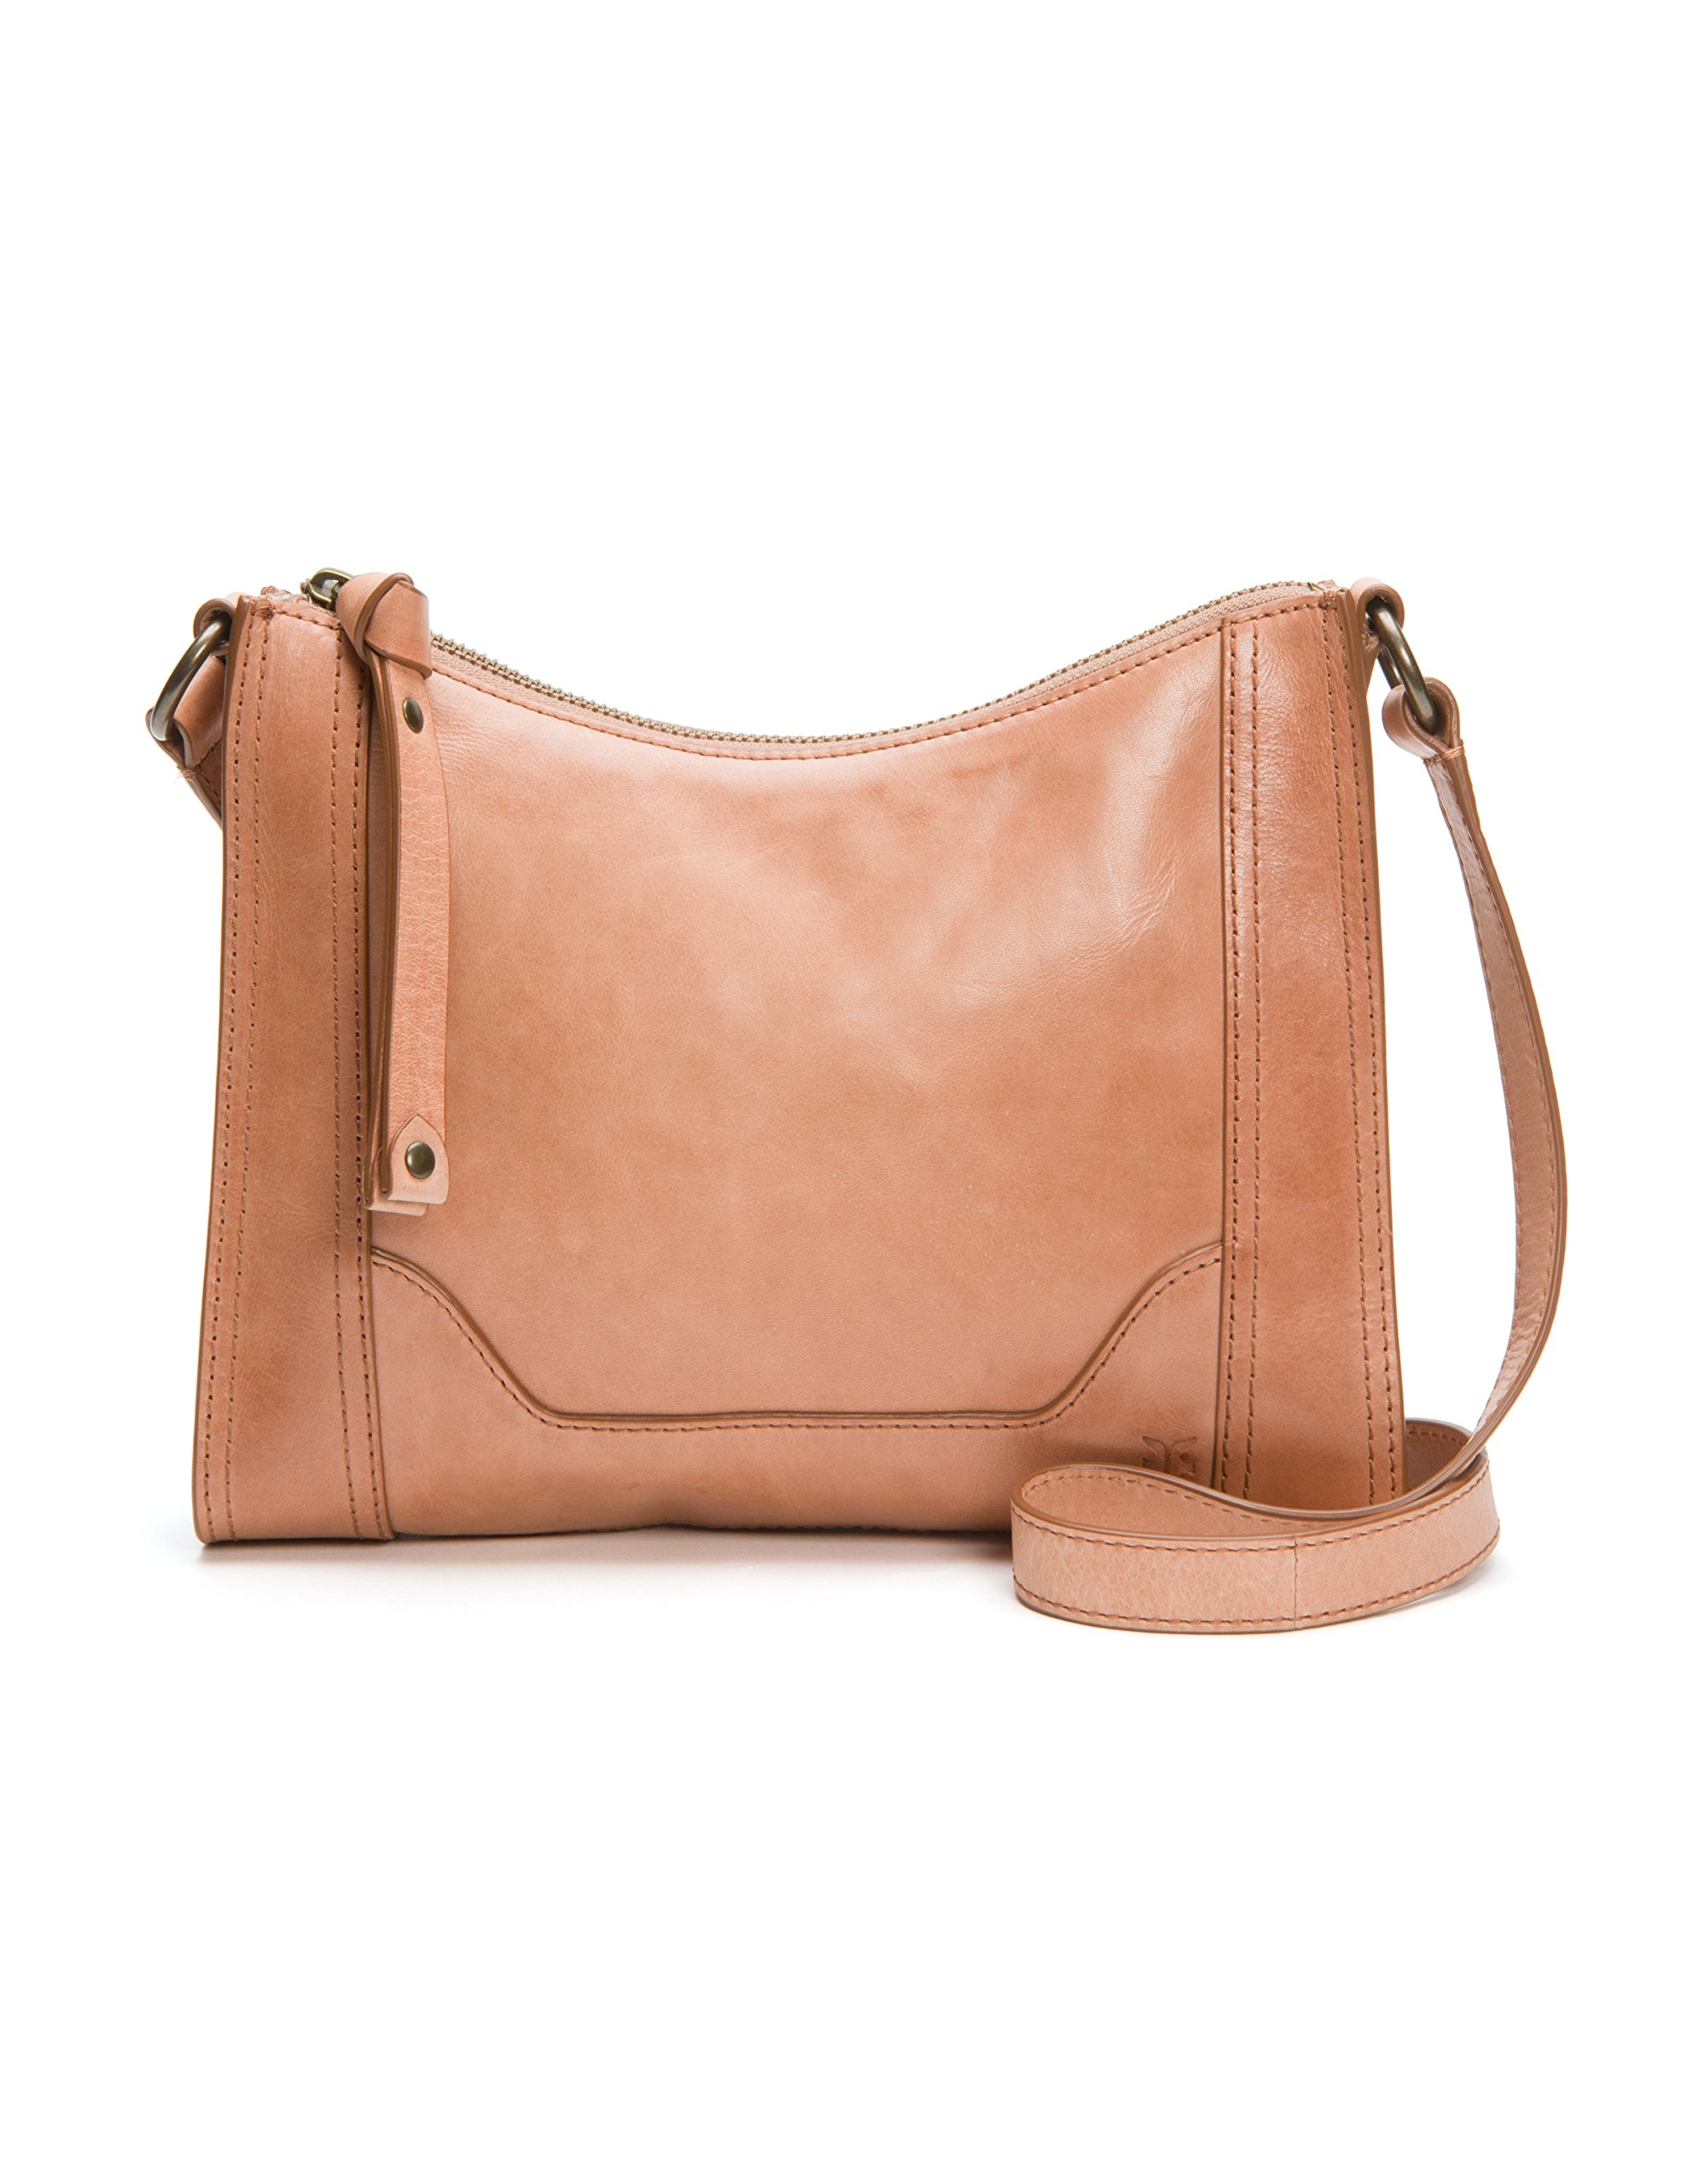 FRYE Melissa Zip Leather Crossbody Bag, Dusty Rose